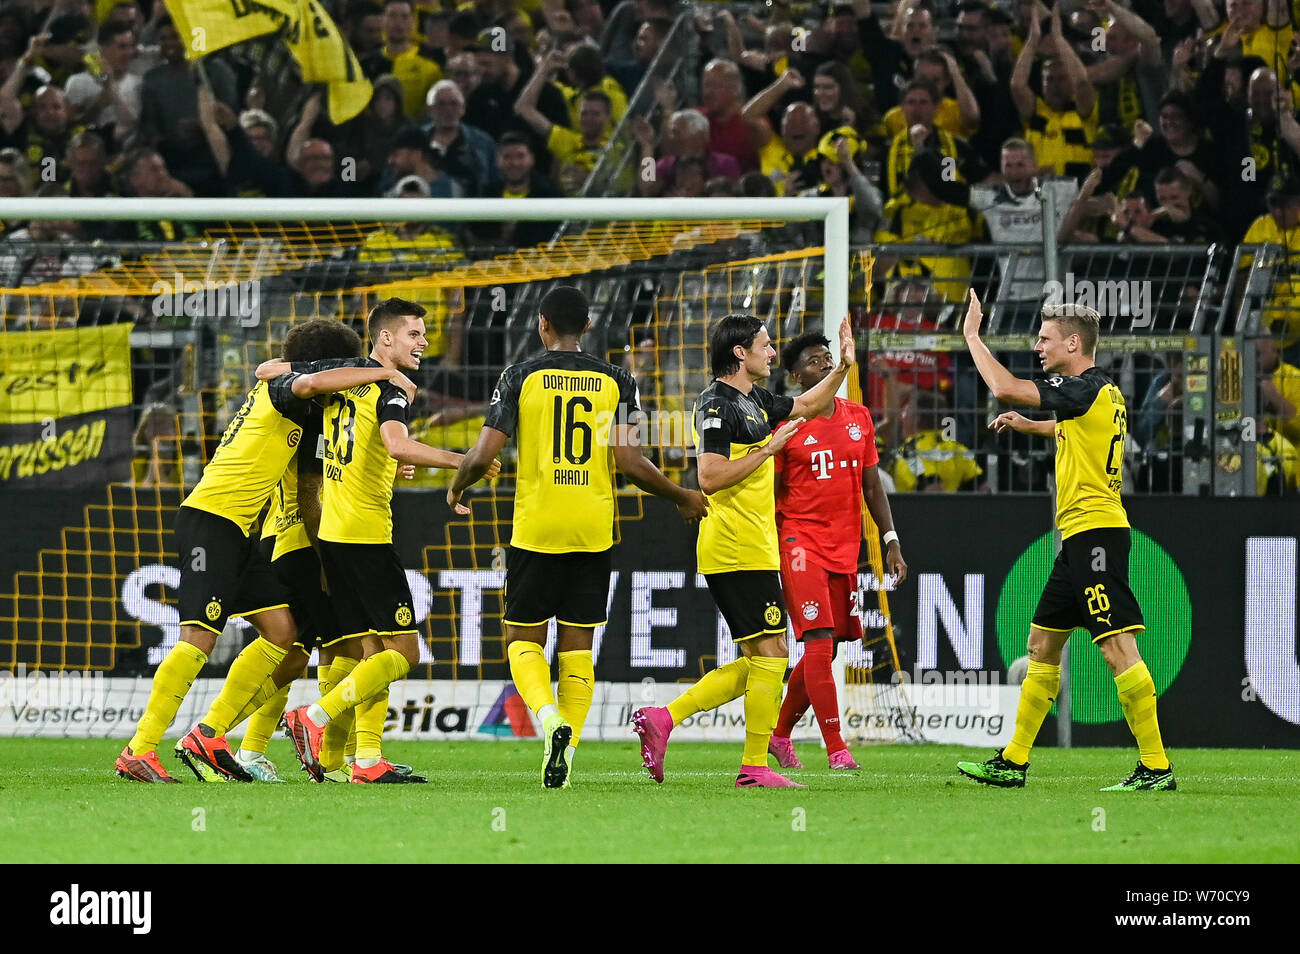 Paco Alcacer From Borussia Dortmund Celebrates After Scoring